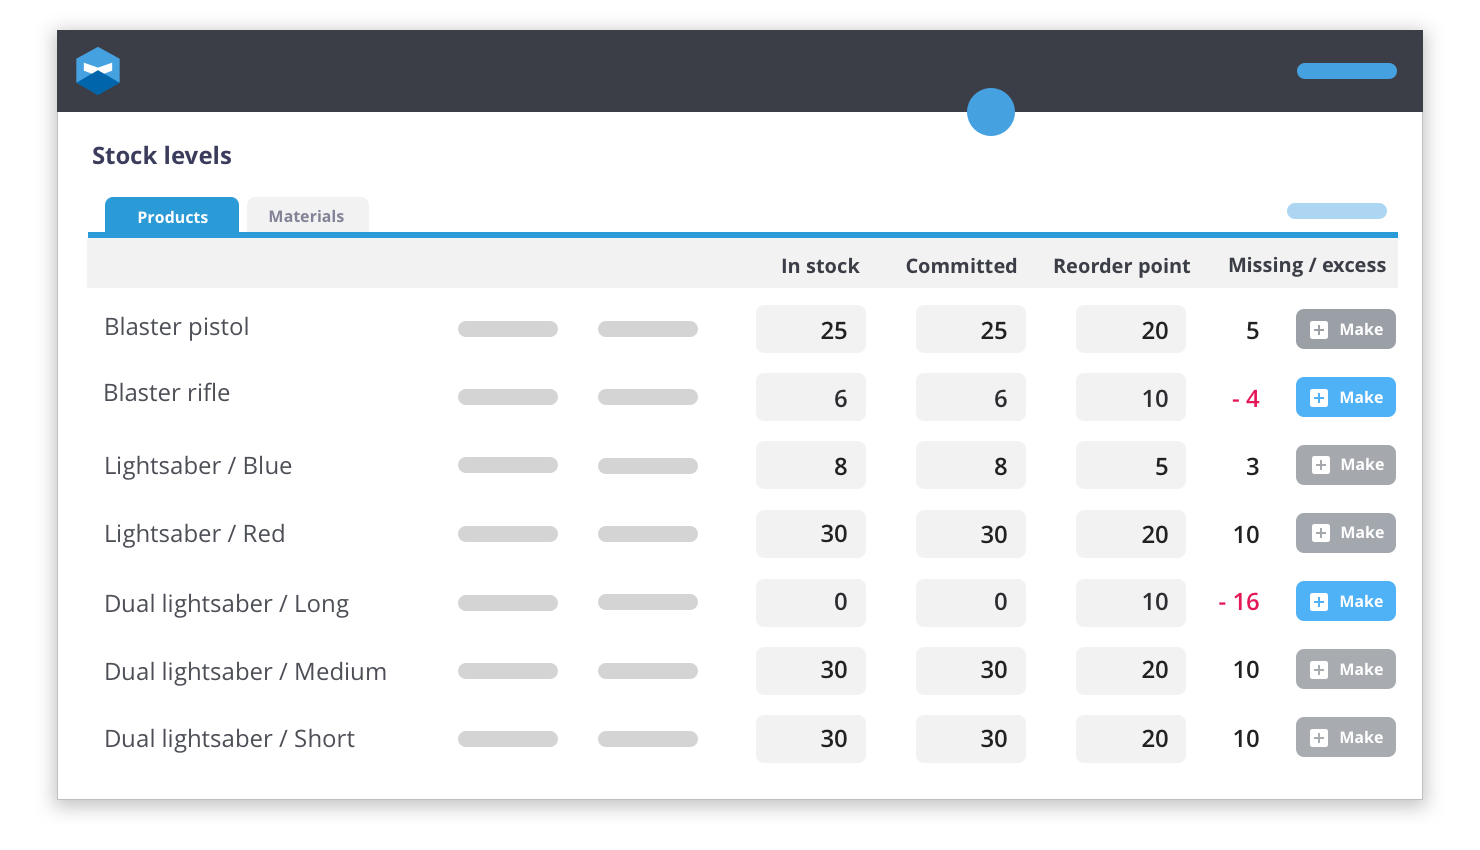 Katana gives you an overview of your stock replenishment by letting you know exactly how far off the optimal levels of inventory you are for each item. The reorder points for each item can be adjusted, and you know exactly when to make purchases when you see quantities in negative red.